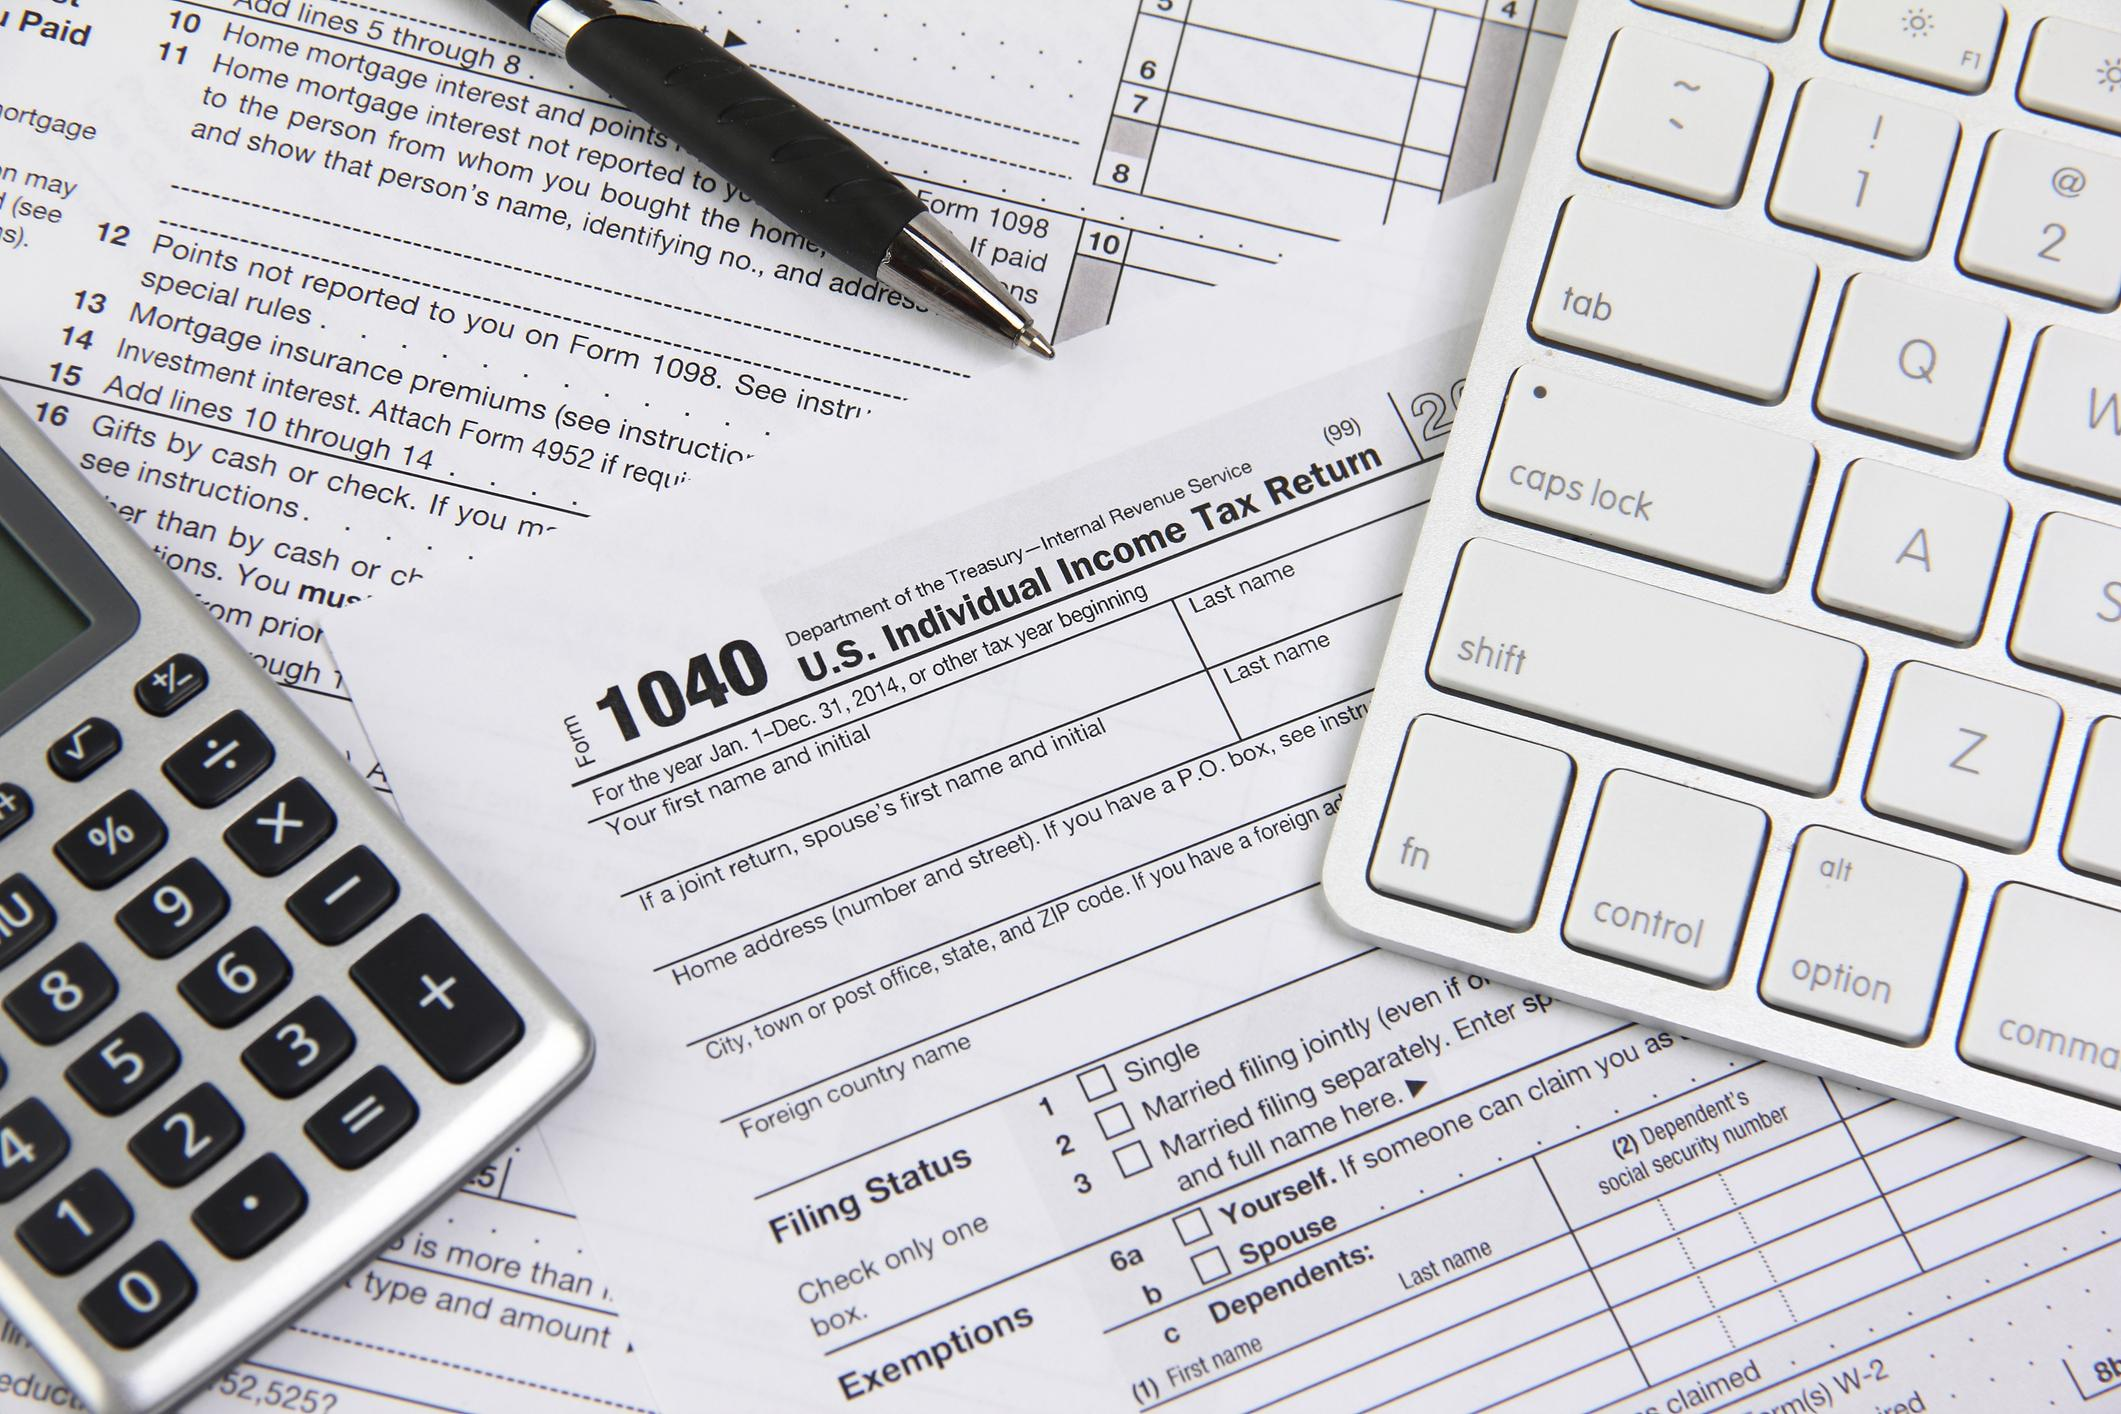 We ran our taxes through 5 programs to see how consistent they were